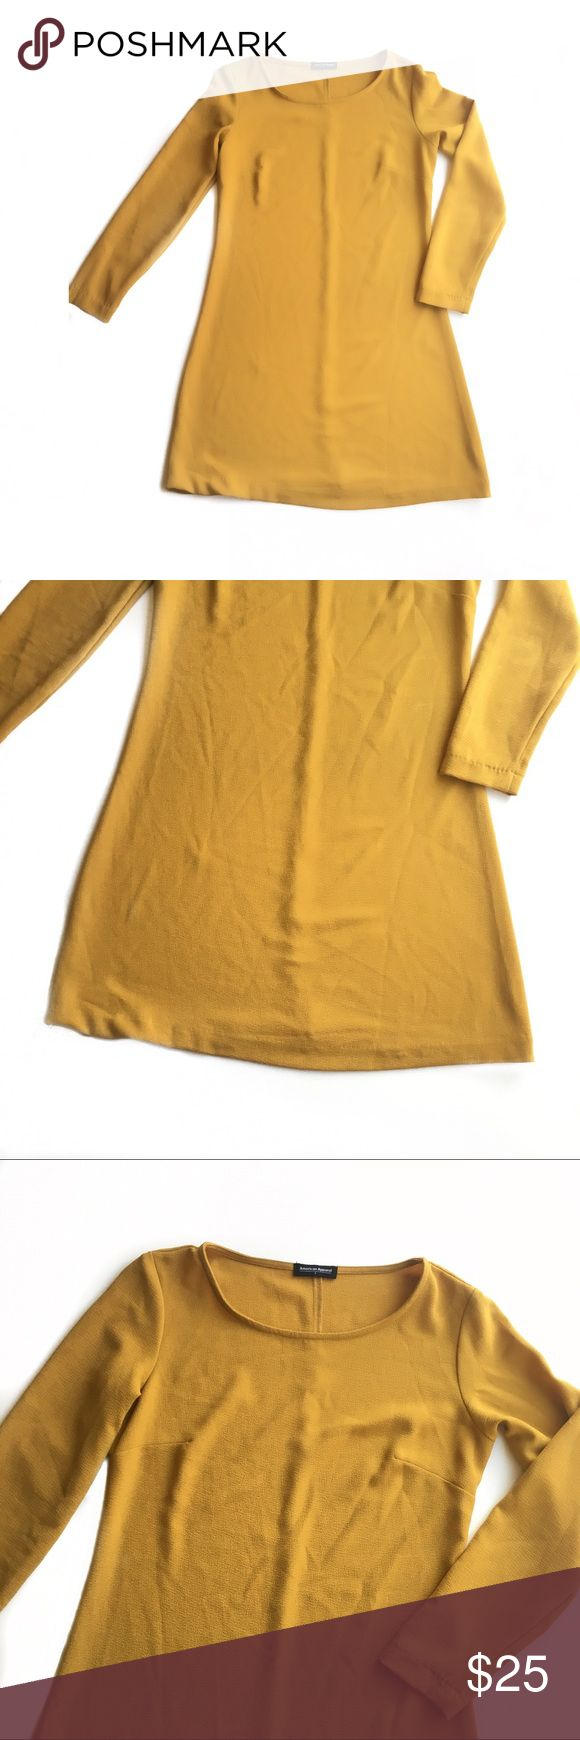 AMERICAN APPAREL Mustard Yellow Long Sleeve Dress American Apparel mustard yellow dress   Dress is free of stains or holes Size small  Bundle two or more items in my closet for a low price offer! American Apparel Dresses Mini